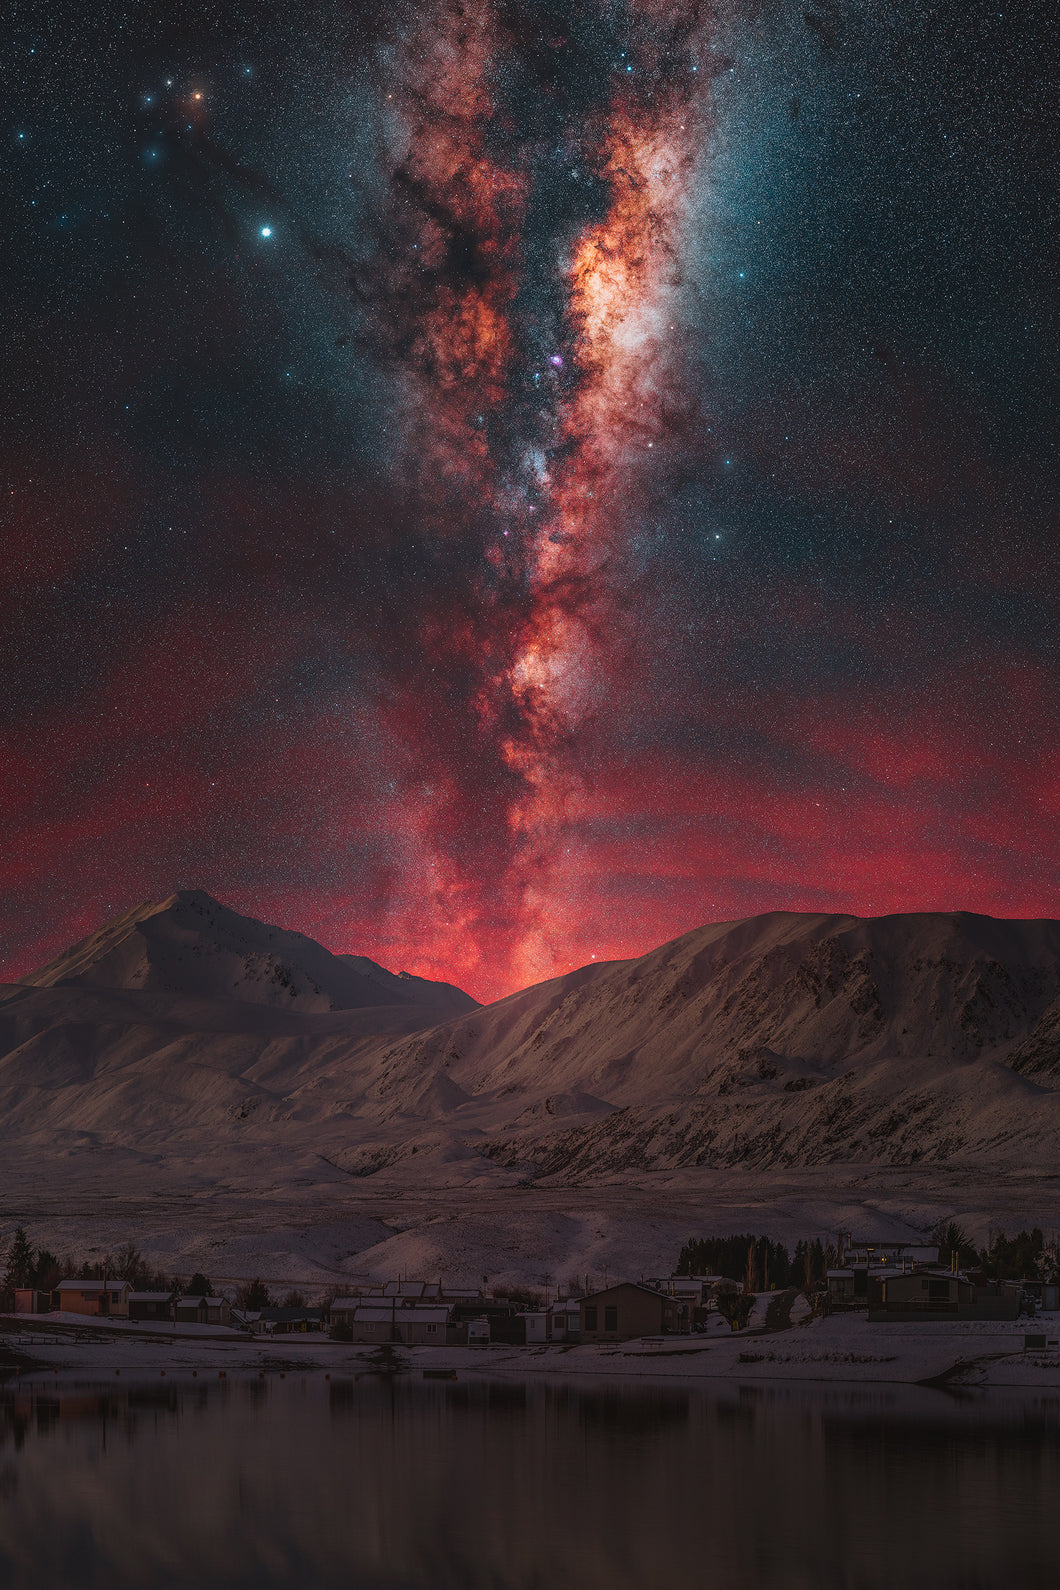 A Landscape image of the Milky Way in New Zealand for wall art